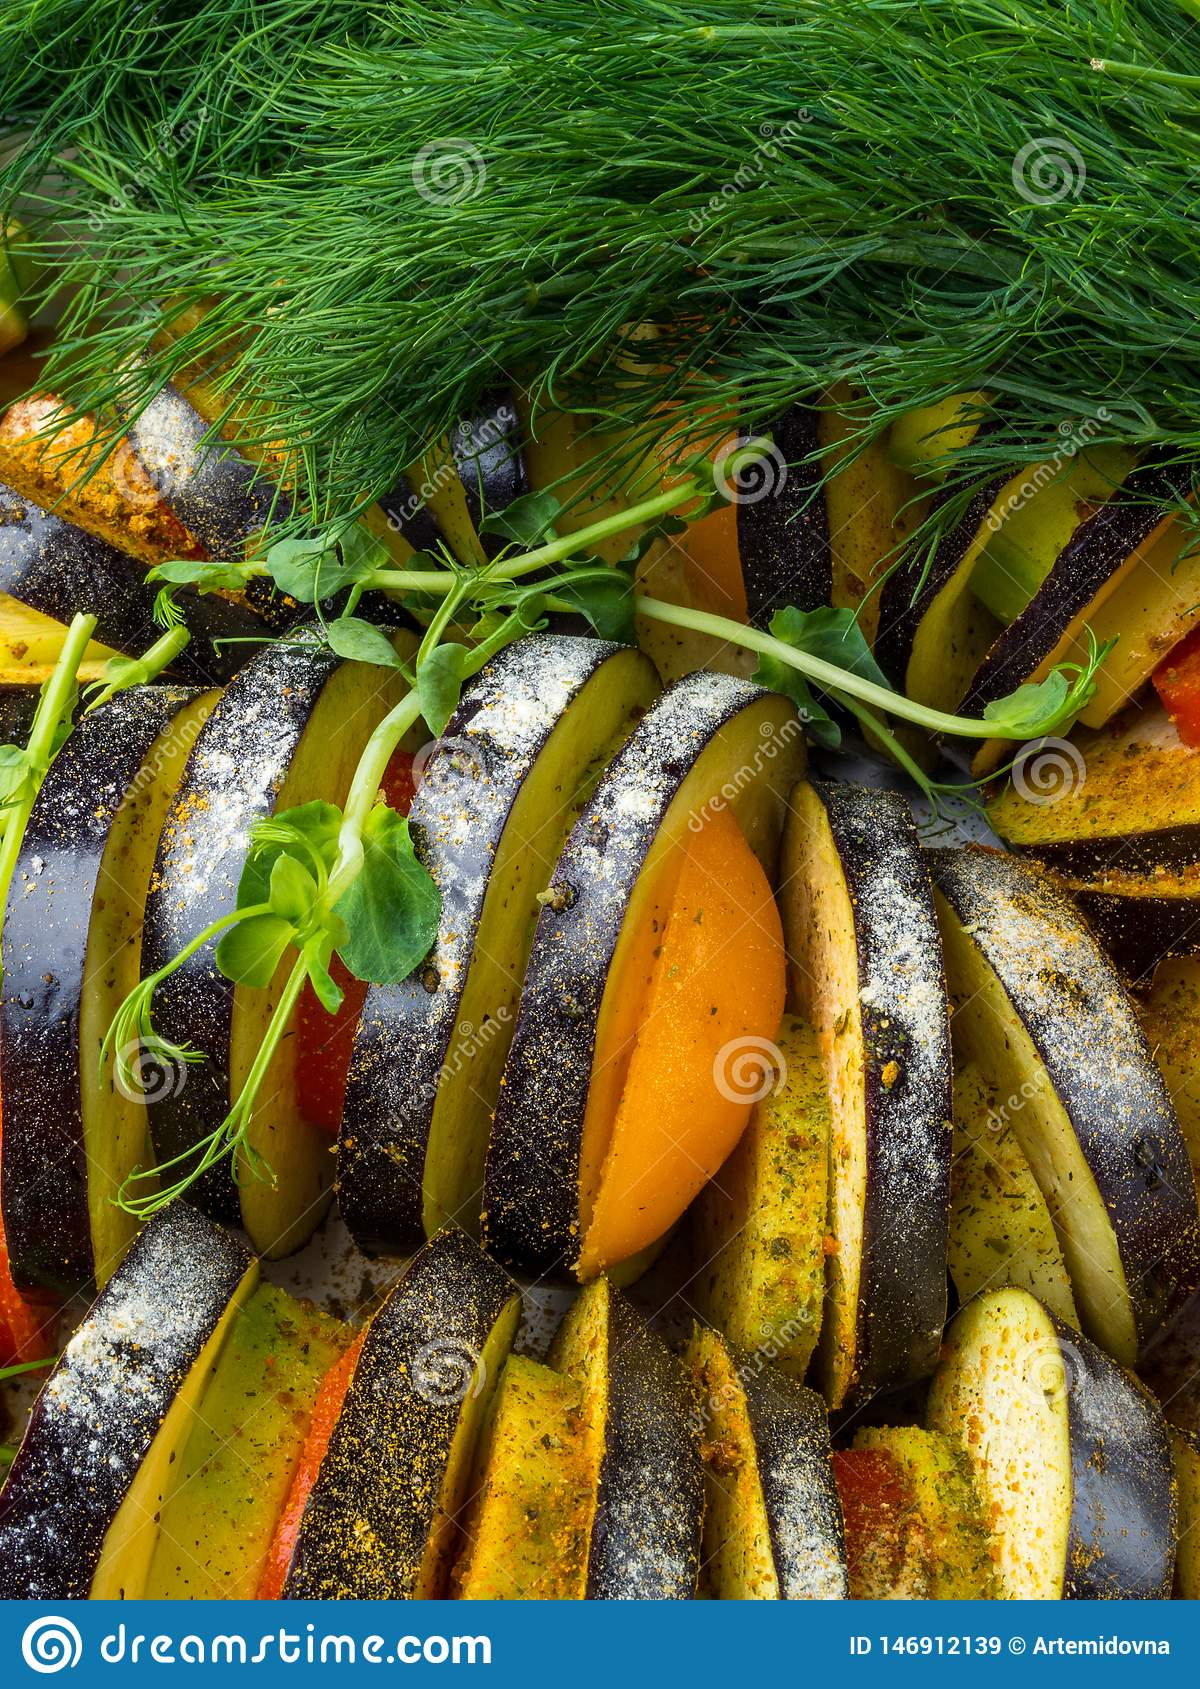 fresh vegetables Ratatouille - traditional French Provencal vegetable dish cooked in oven. Diet vegetarian vegan food